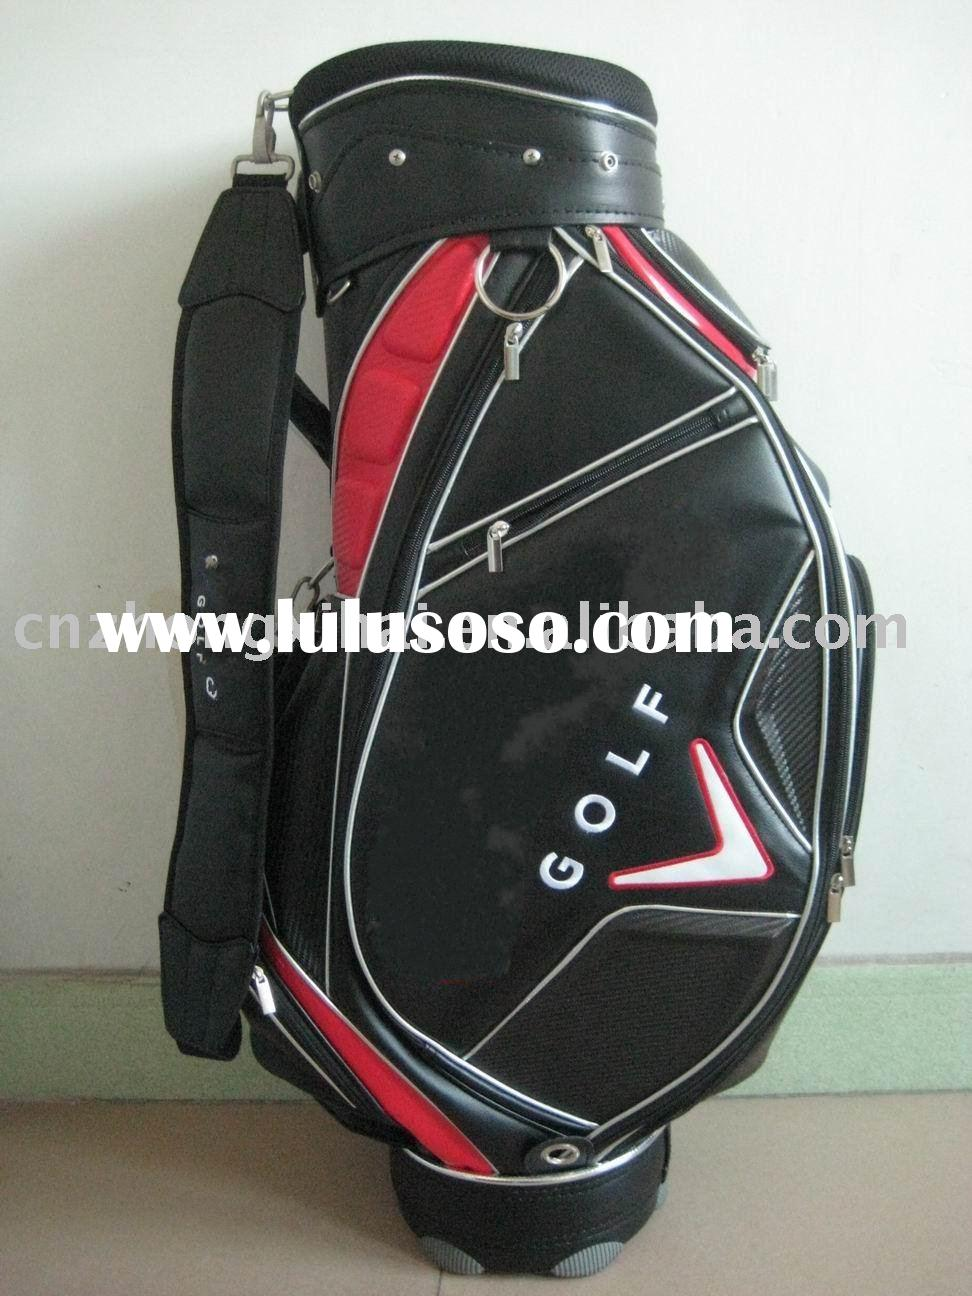 Golf Bag With Competitive Price